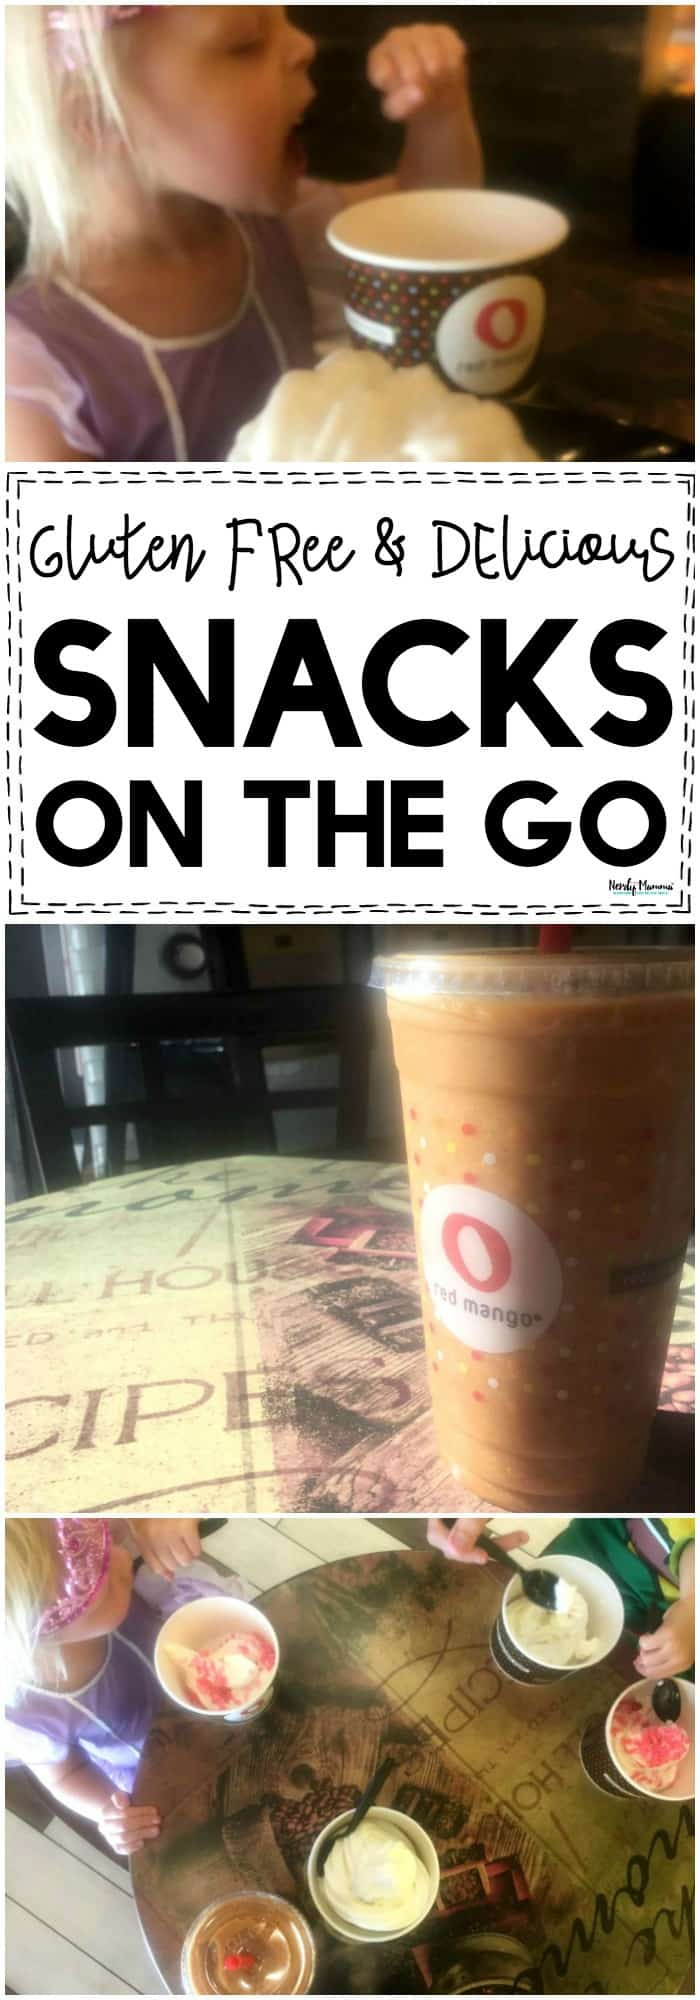 OMG! You've GOT to try these all-natural gluten free fall smoothies from Red Mango!!